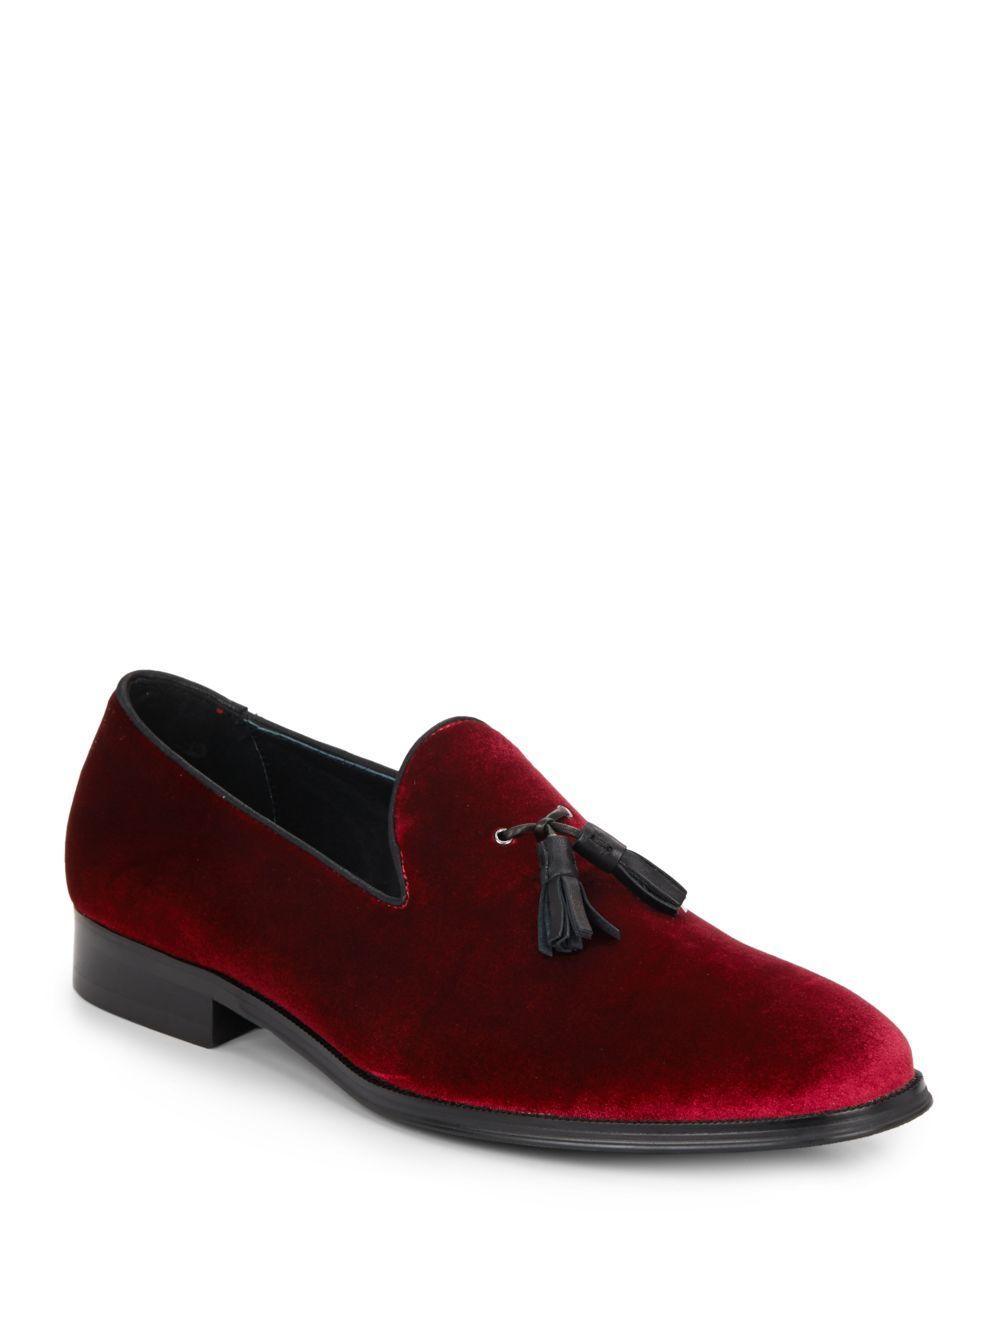 60af457e7b0 Steve madden Bway Velvet Loafers in Red for Men (burgundy)